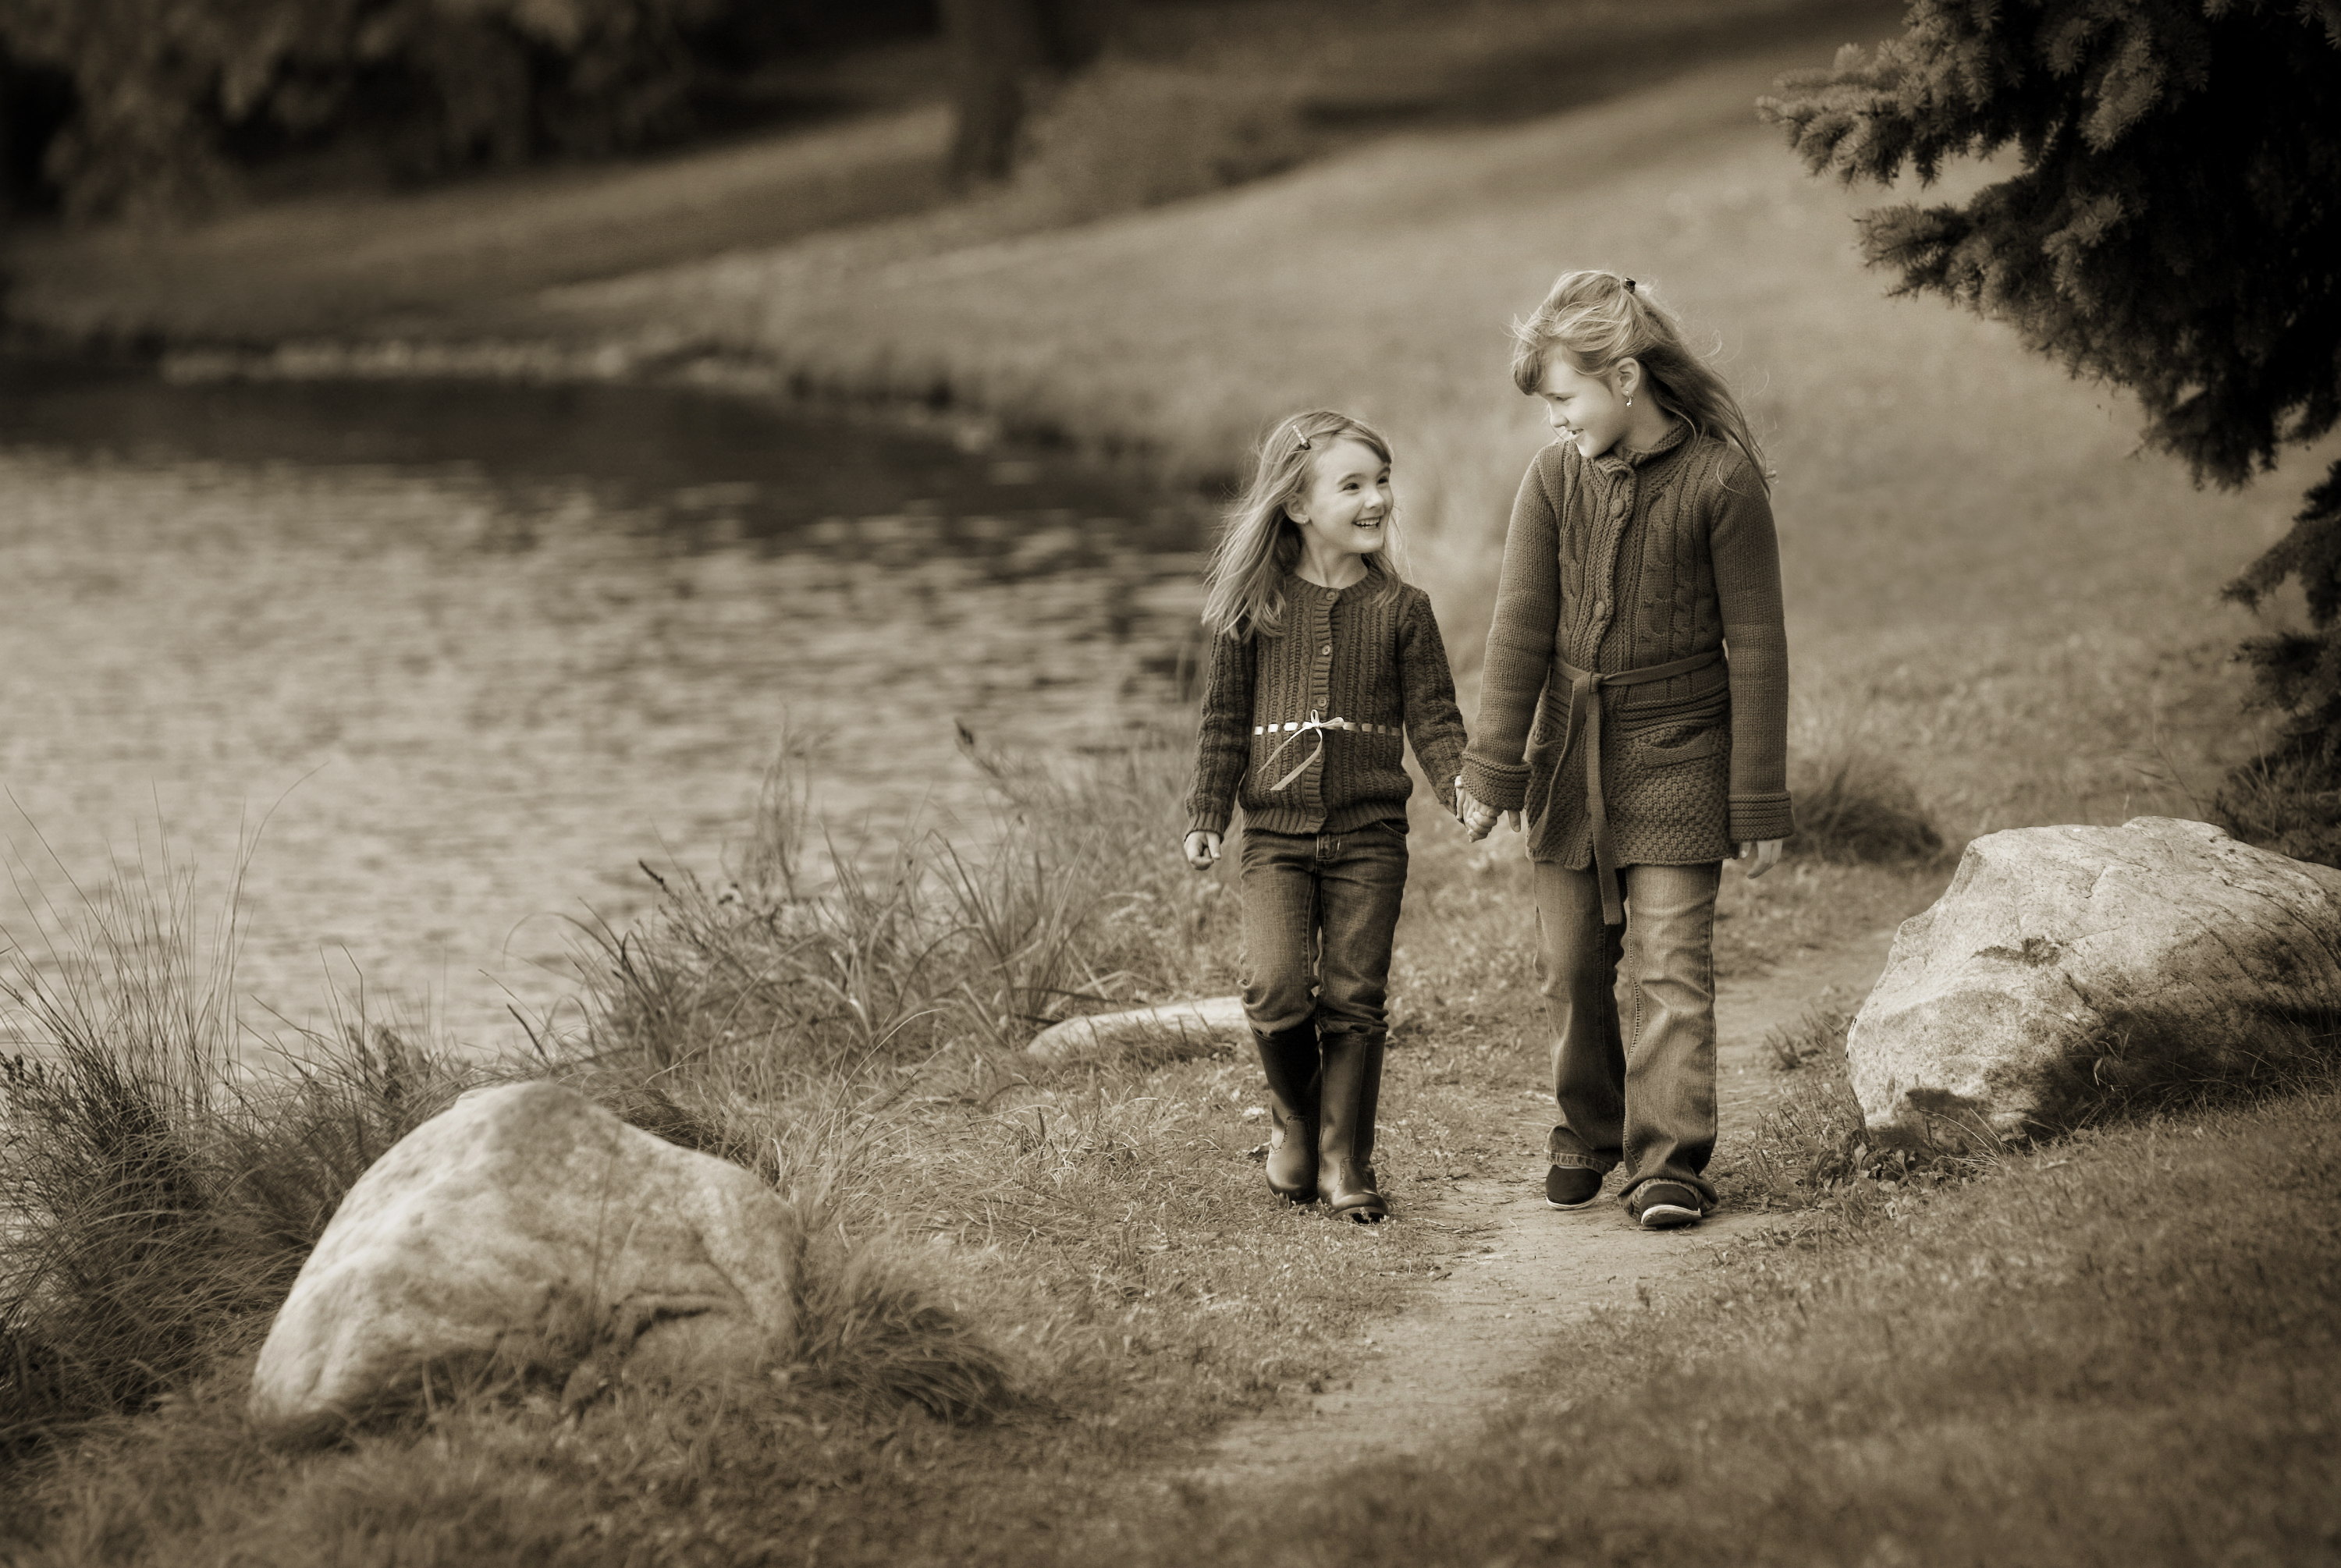 Two young sisters walking hand in hand looking at each other smiling